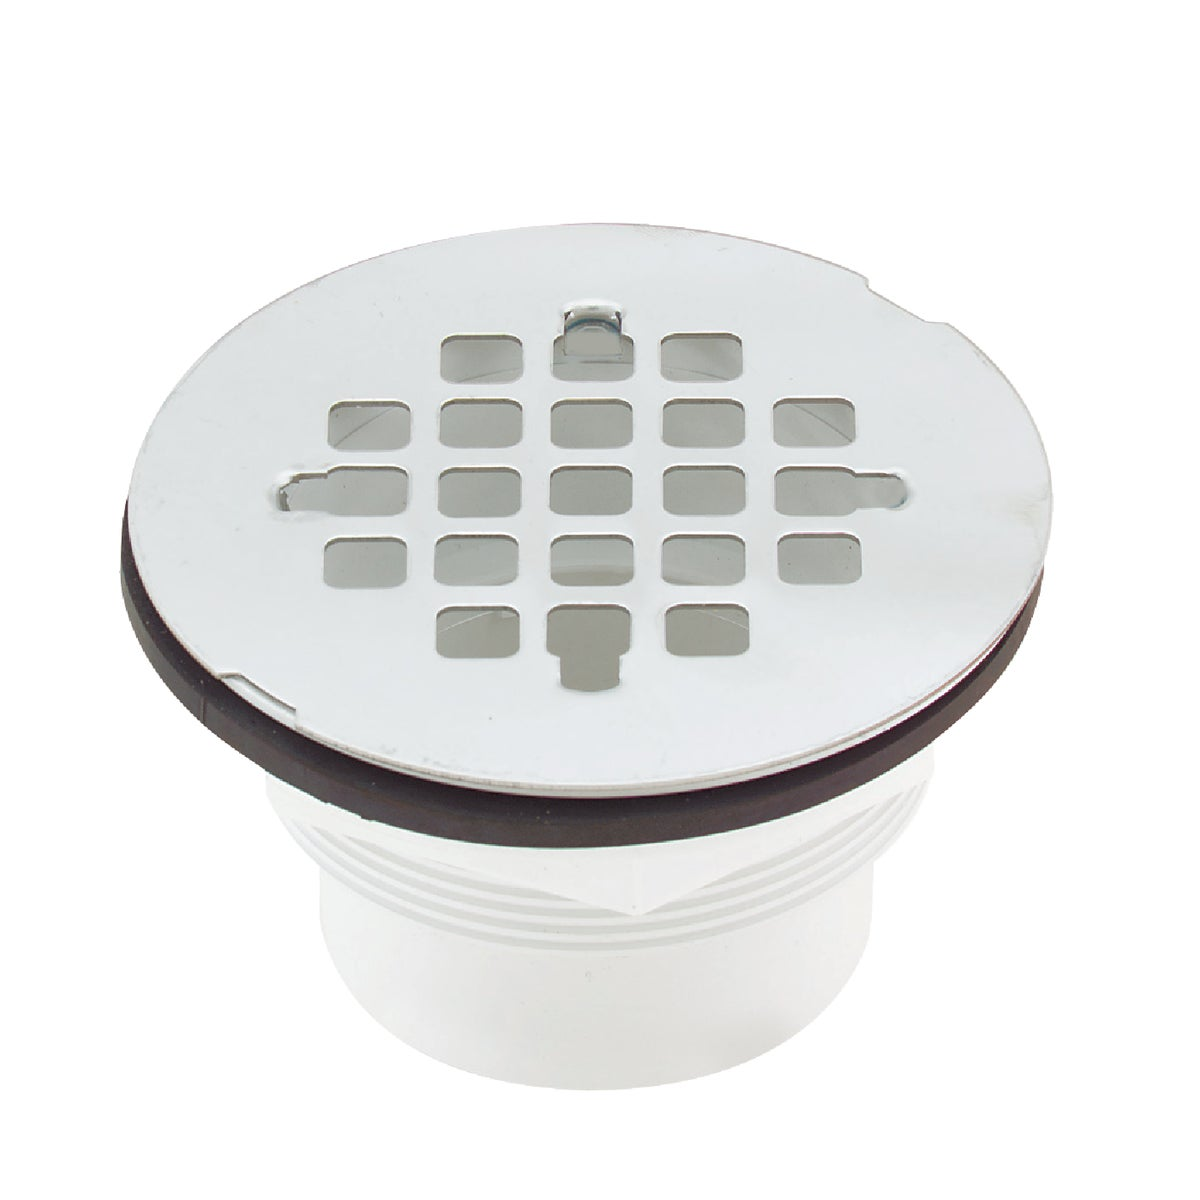 SHOWER DRAIN - D41-007 by Jones Stephens Corp